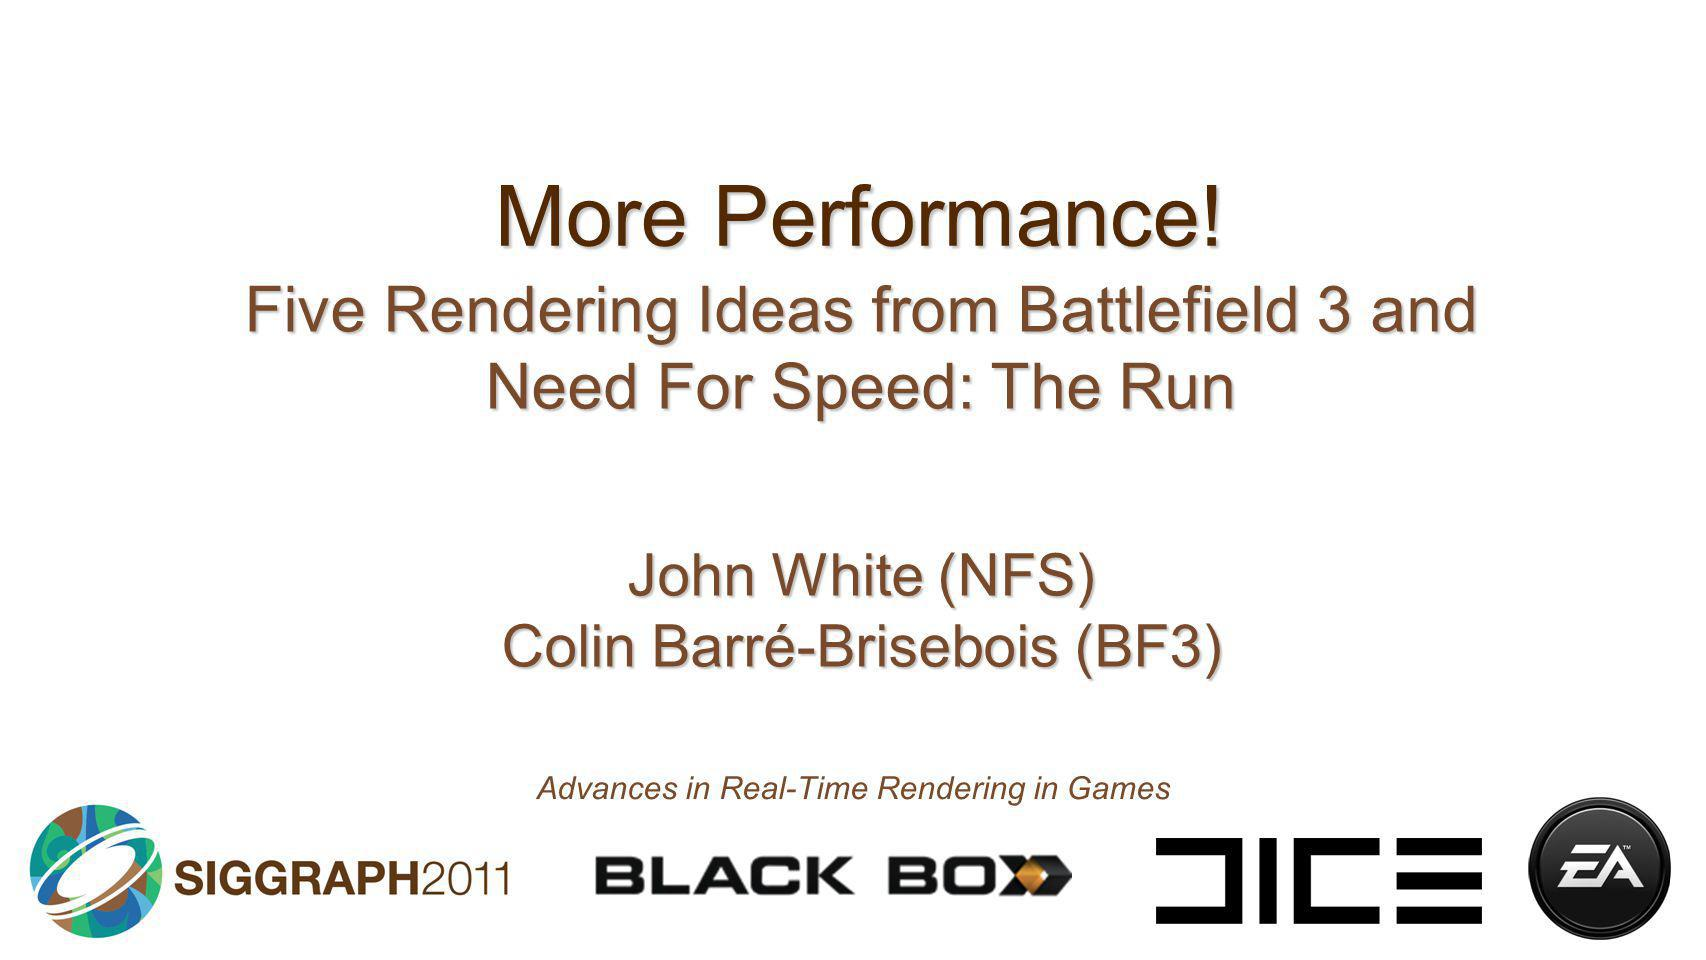 More Performance! Five Rendering Ideas from Battlefield 3 and Need For Speed: The Run. John White (NFS) Colin Barré-Brisebois (BF3)